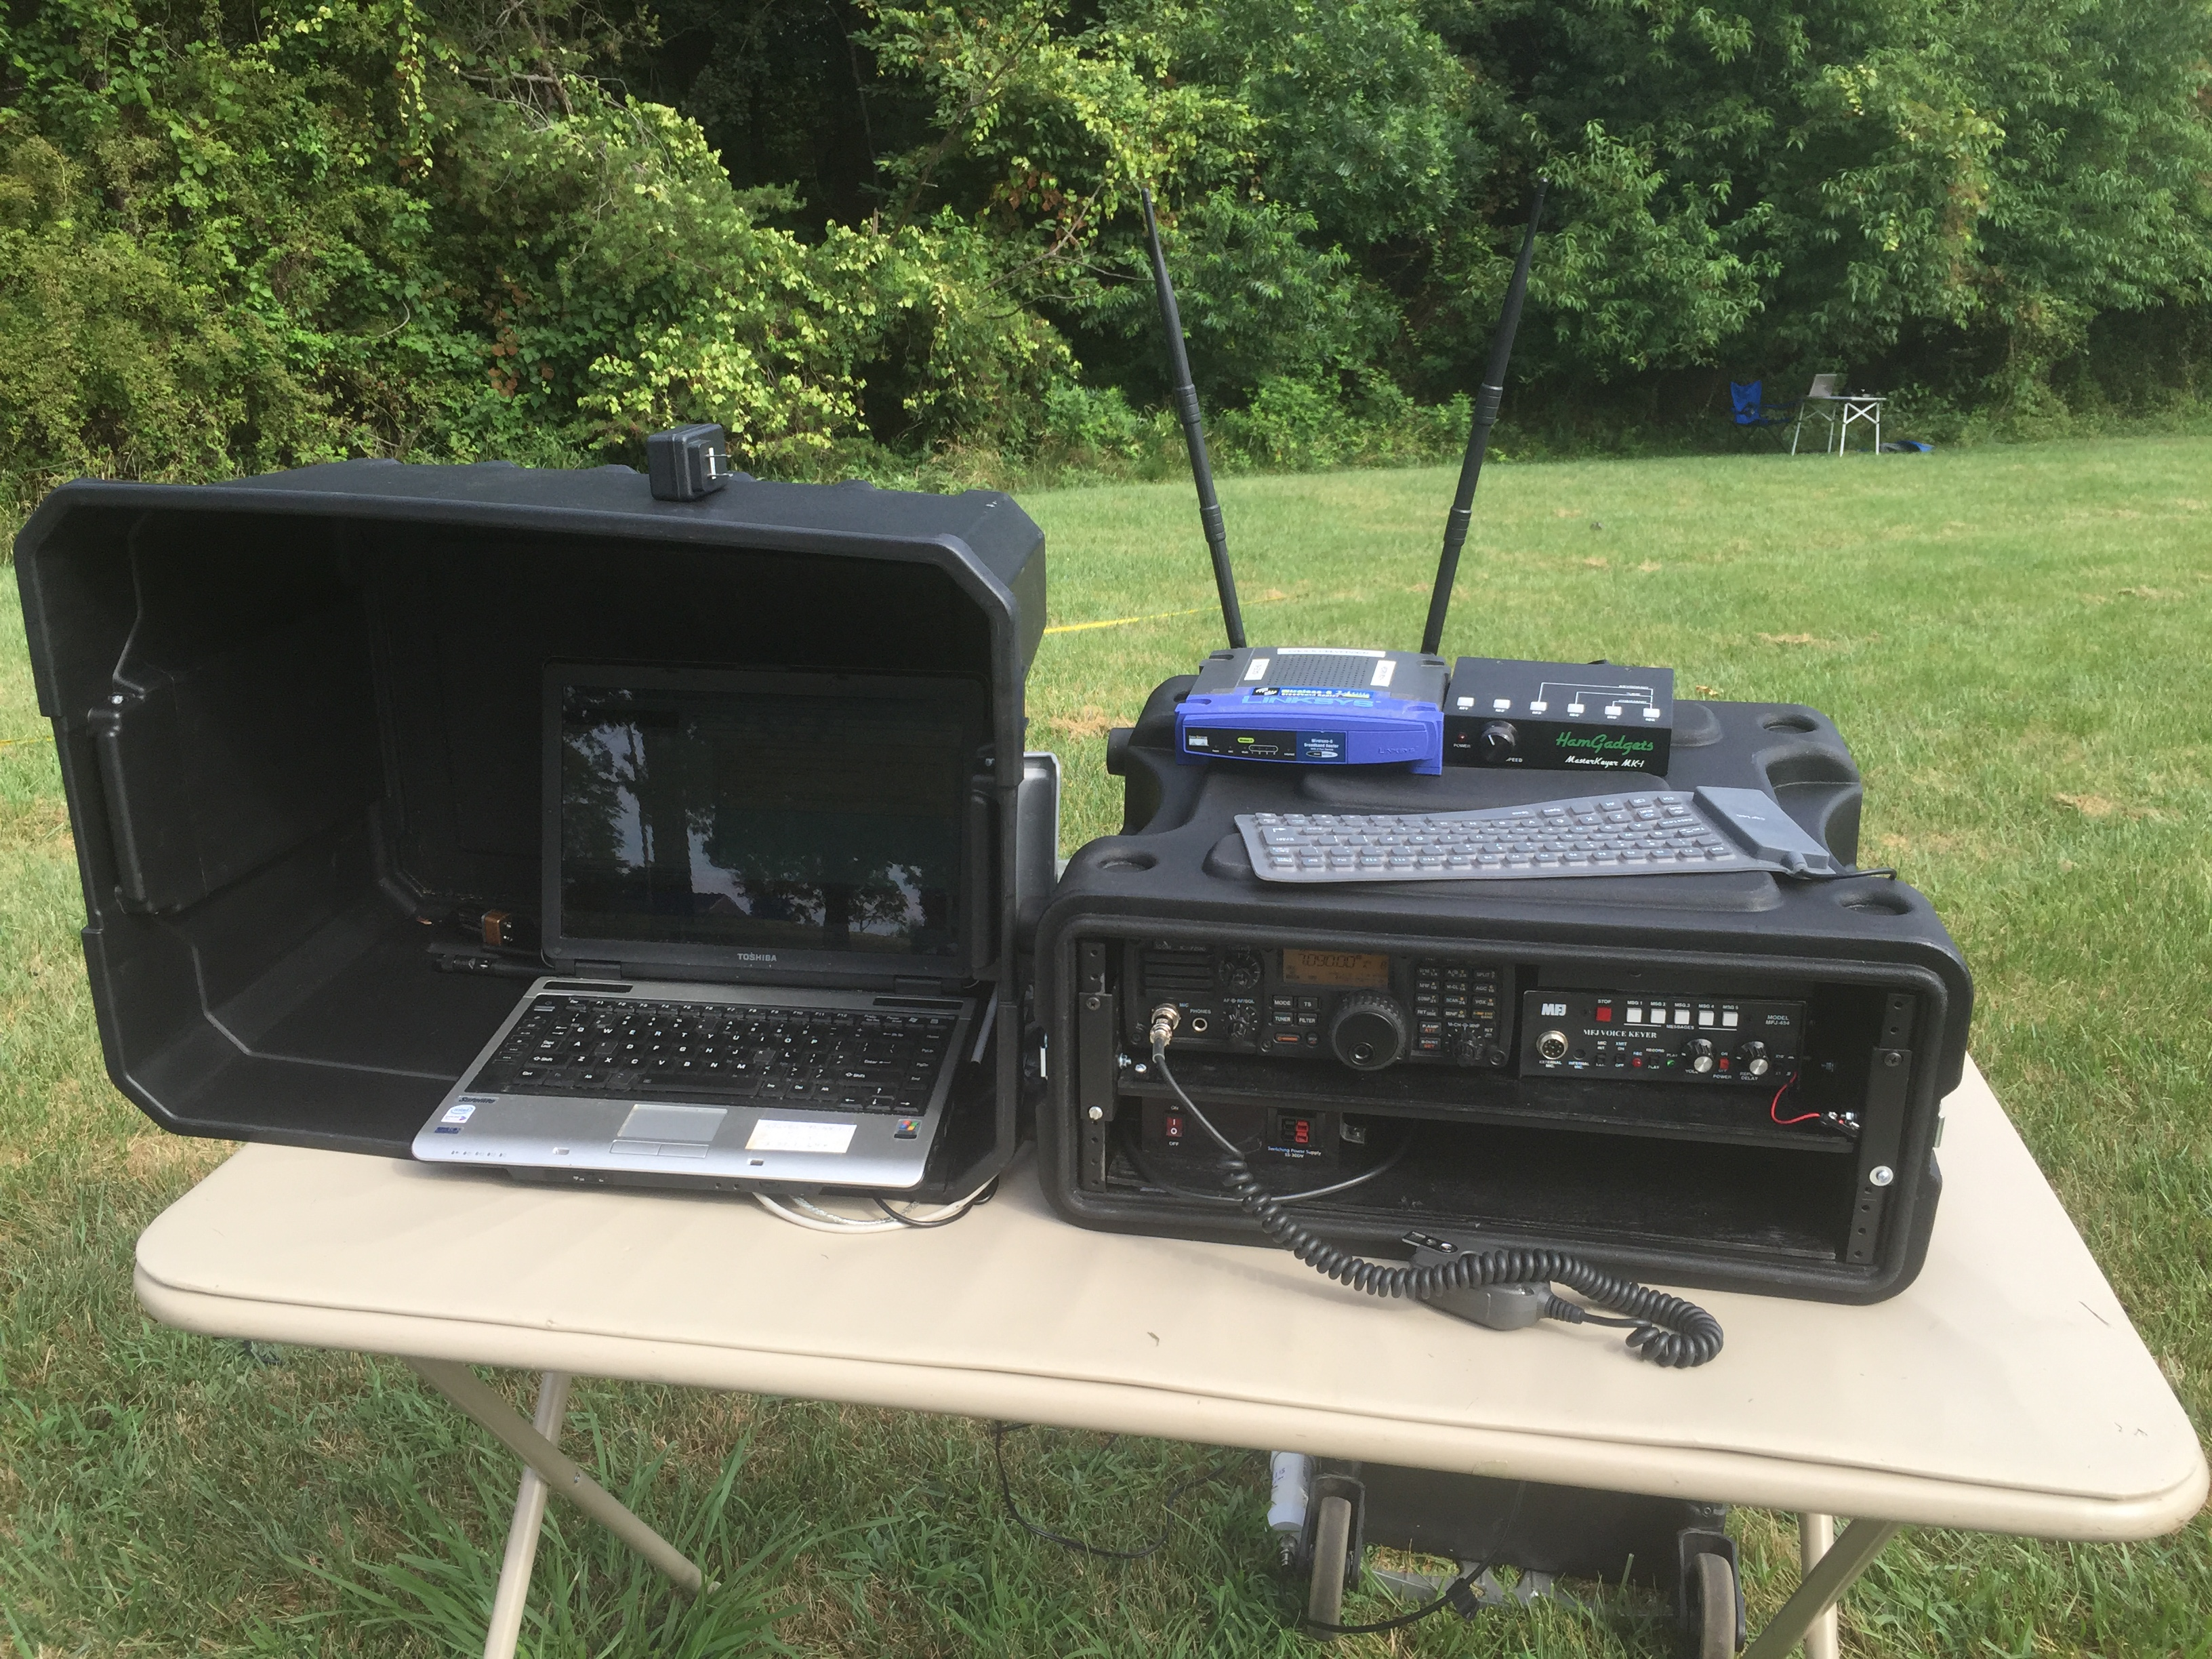 The HF host machine and HF rig